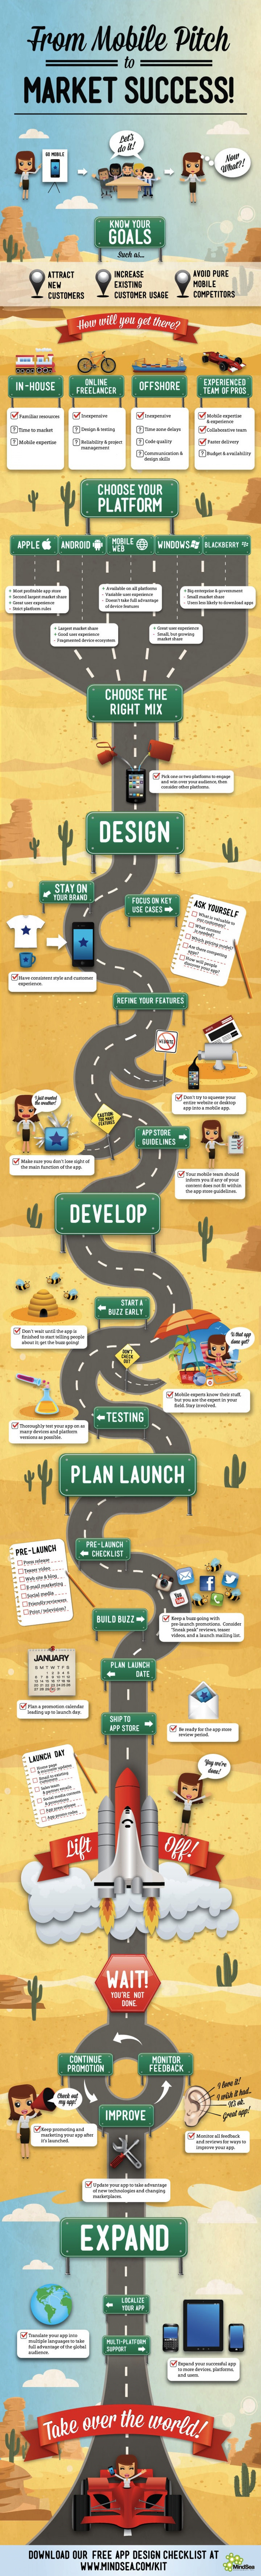 From Mobile Pitch to Market Success Infographic